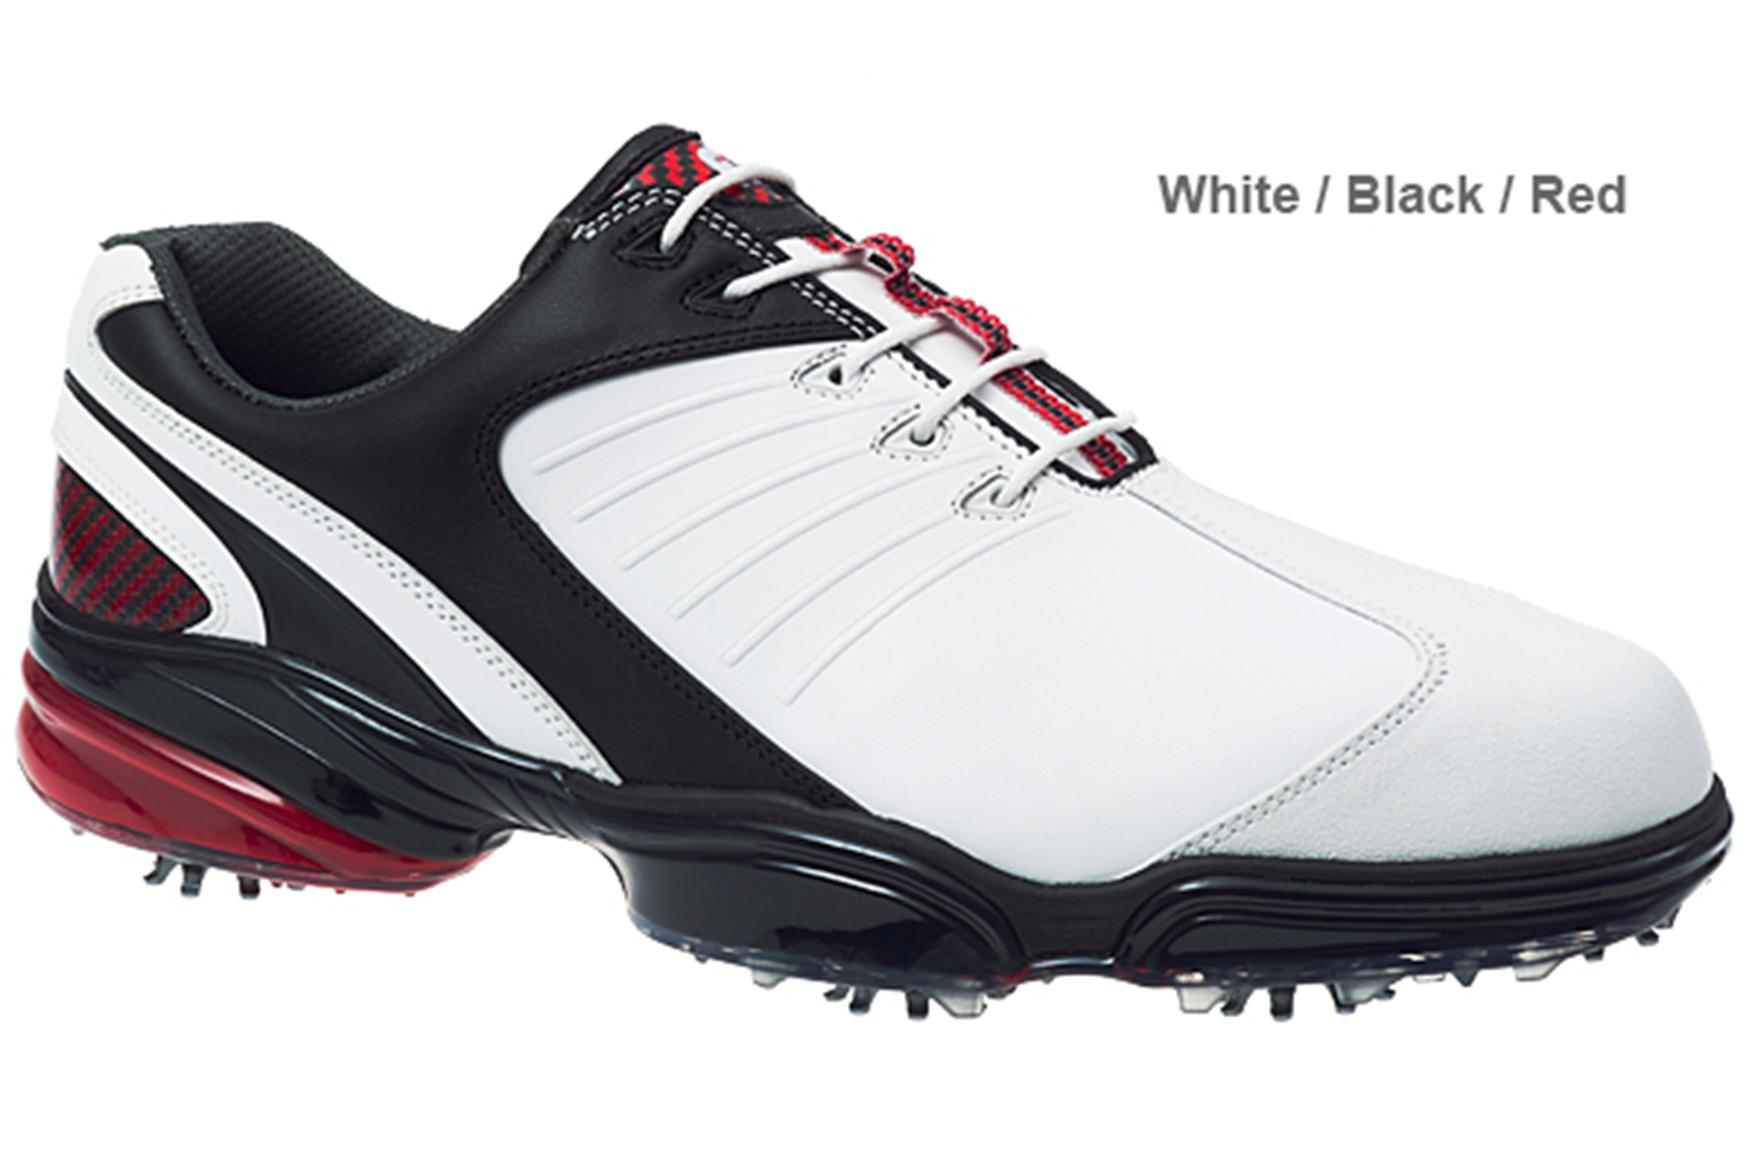 Nike Womens Golf Shoes Sports Authority